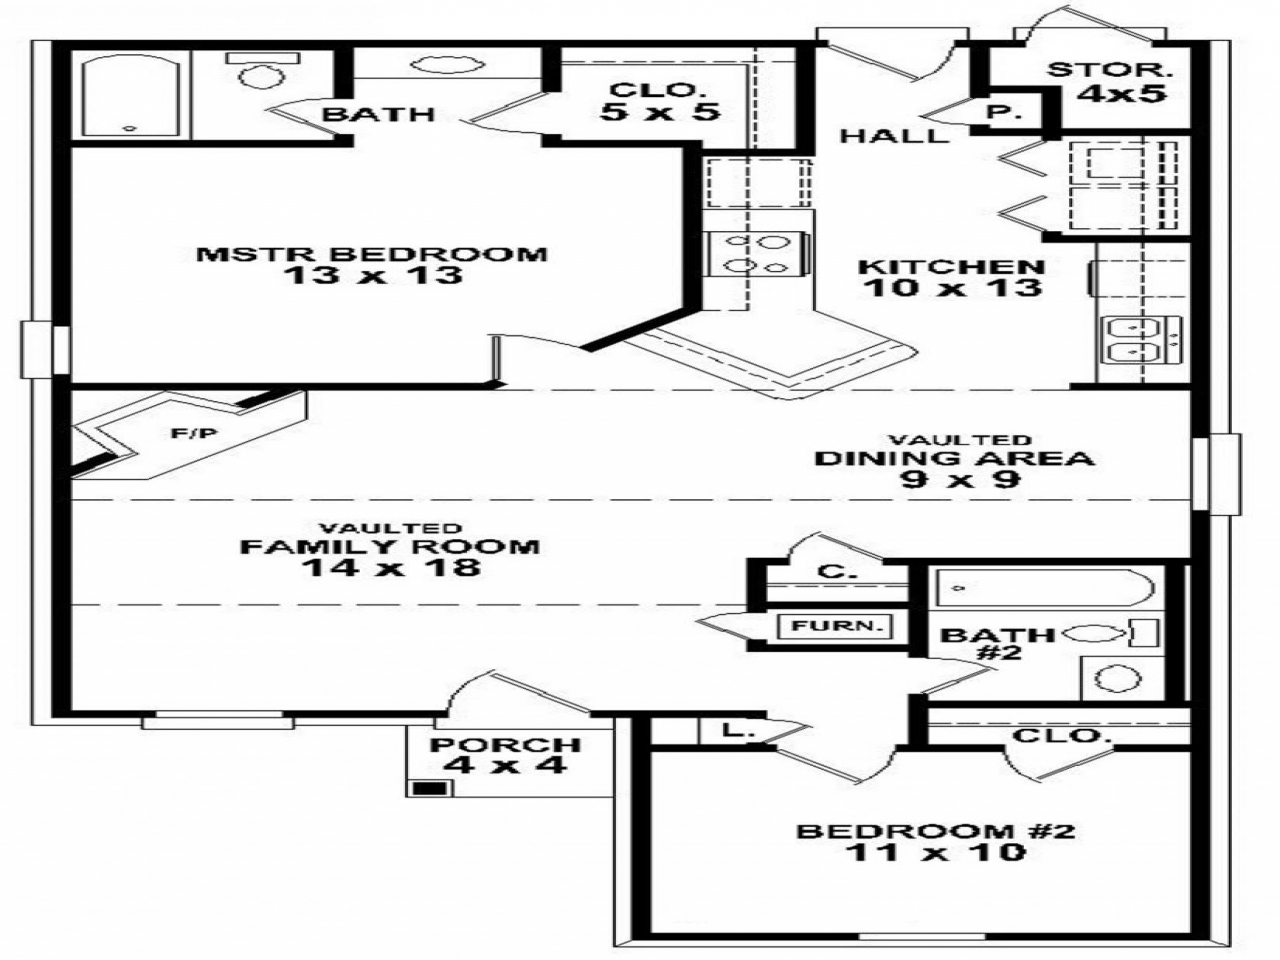 Simple 2 bedroom house floor plans small two bedroom house for Small 2 bedroom house plans